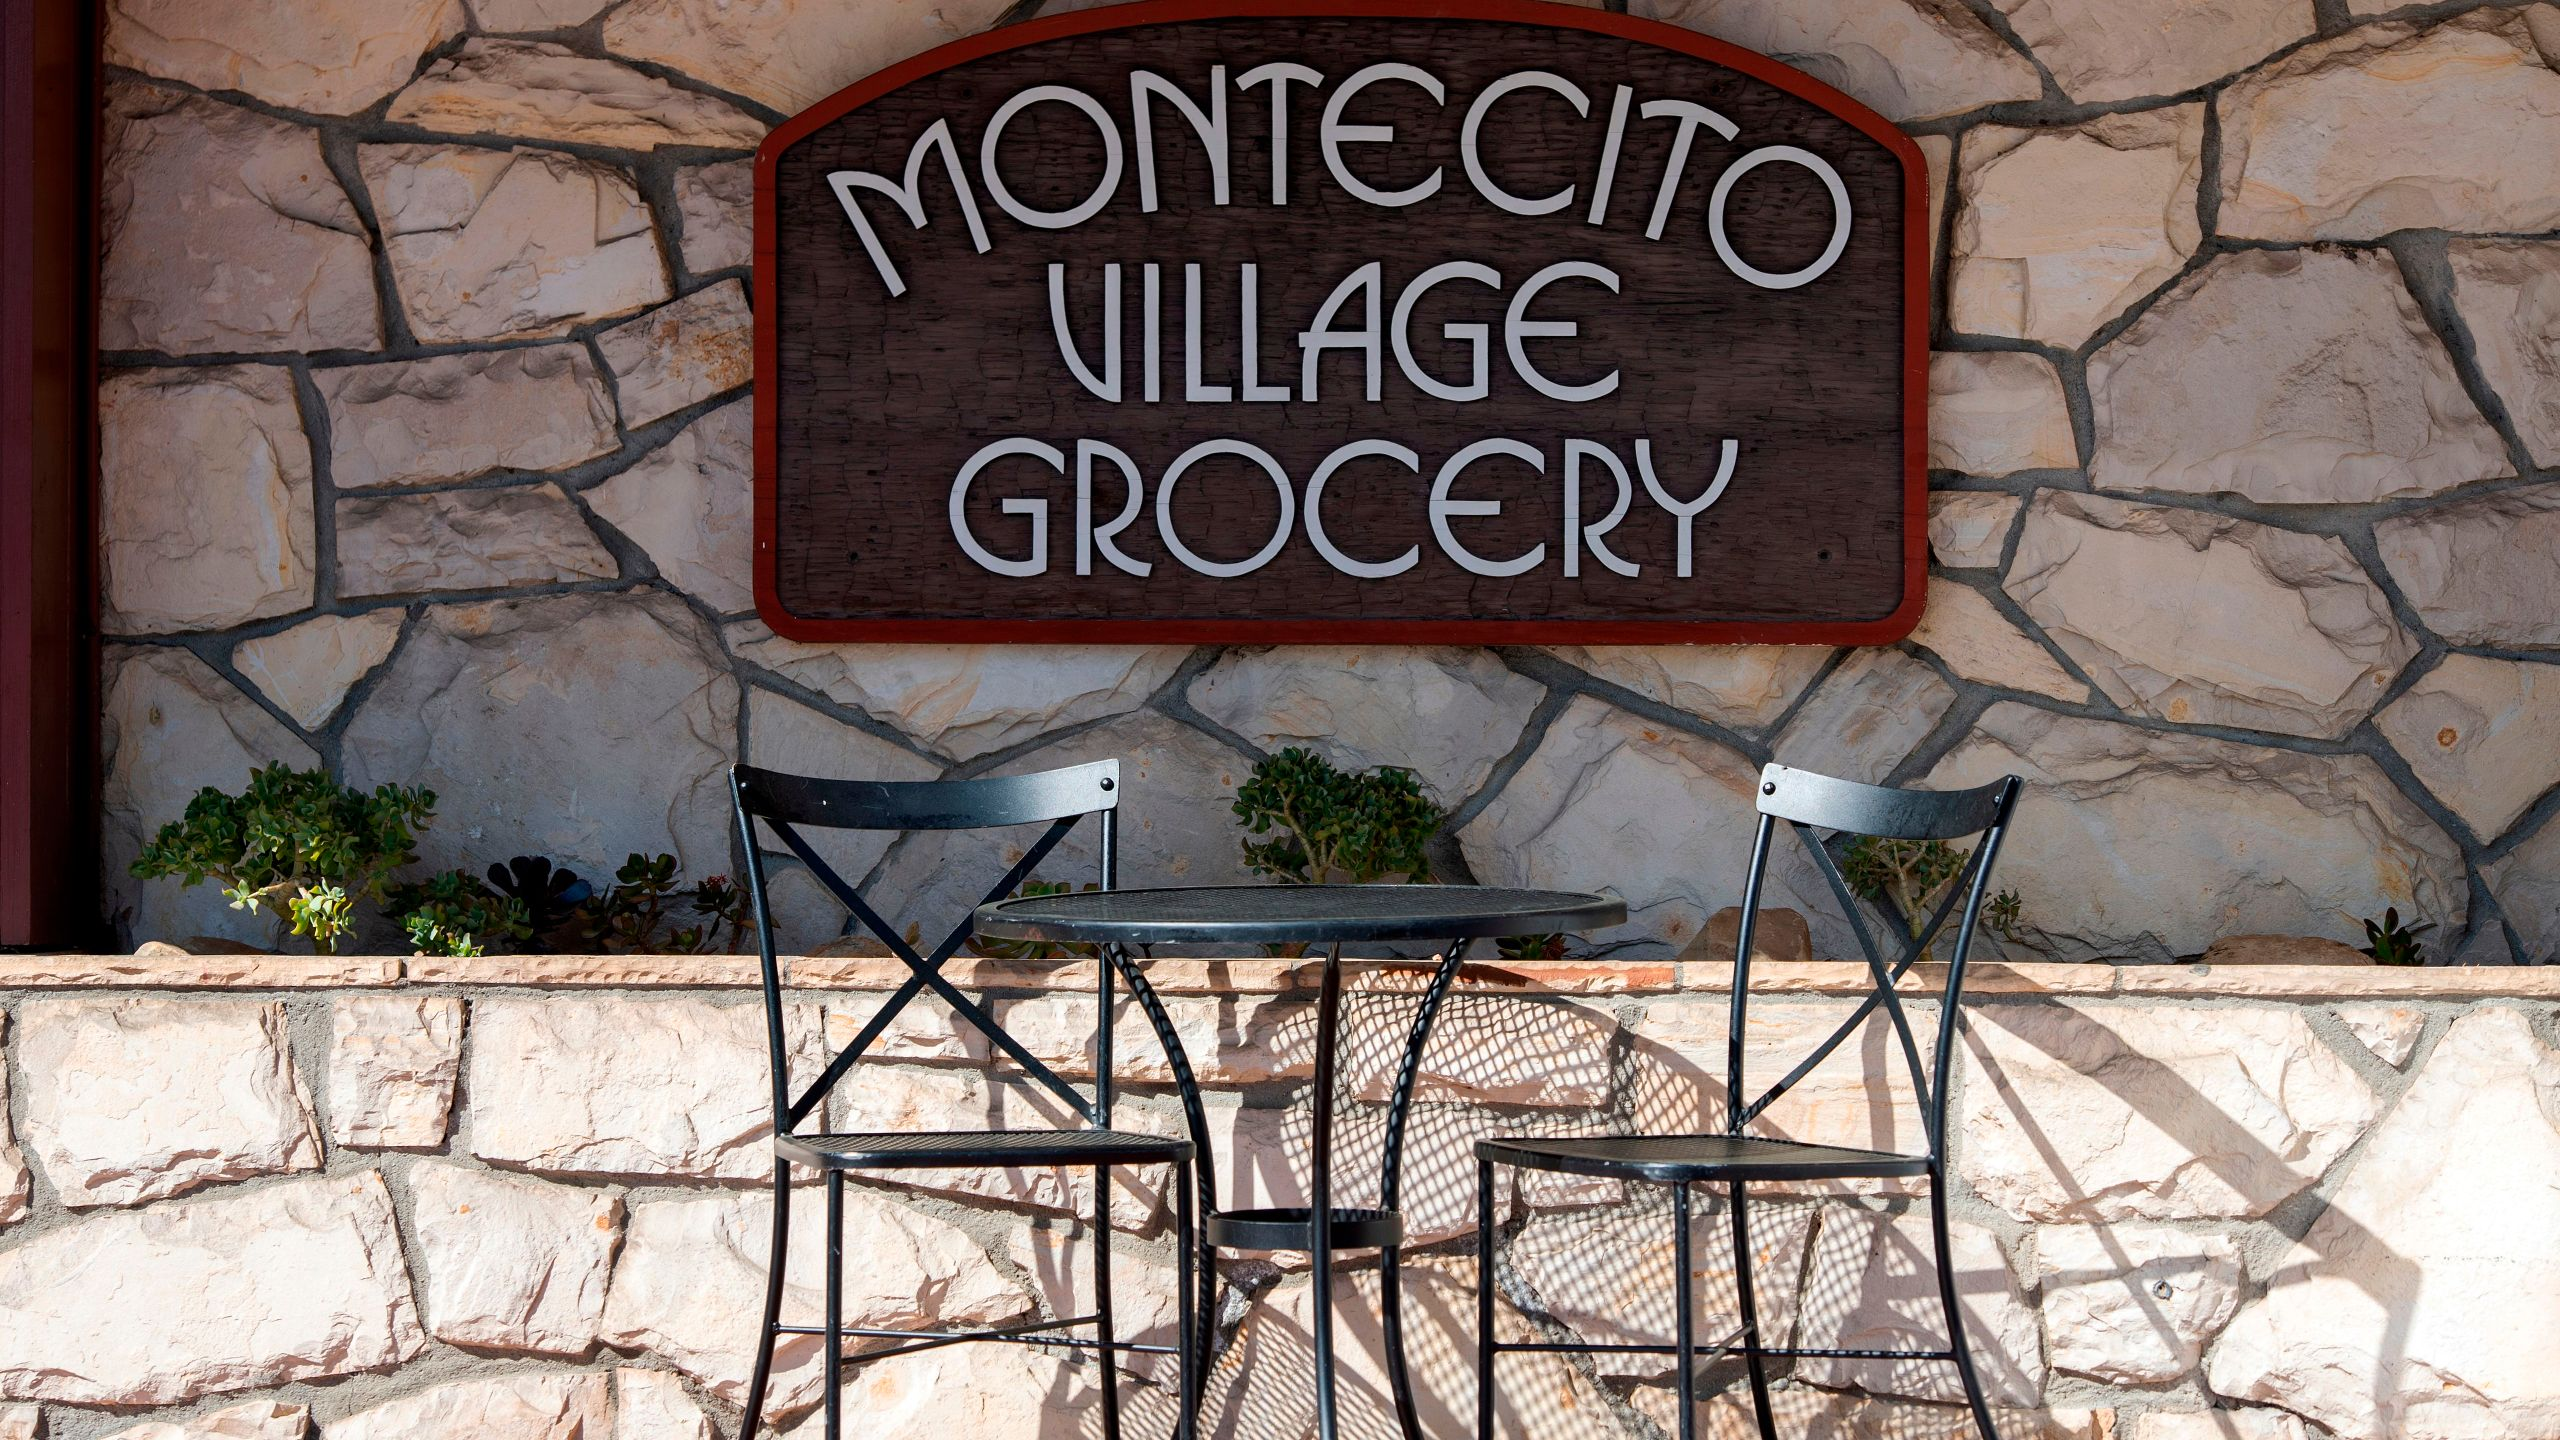 View of the Montecito Village Grocery in Montecito on March 6, 2021. (VALERIE MACON/AFP via Getty Images)